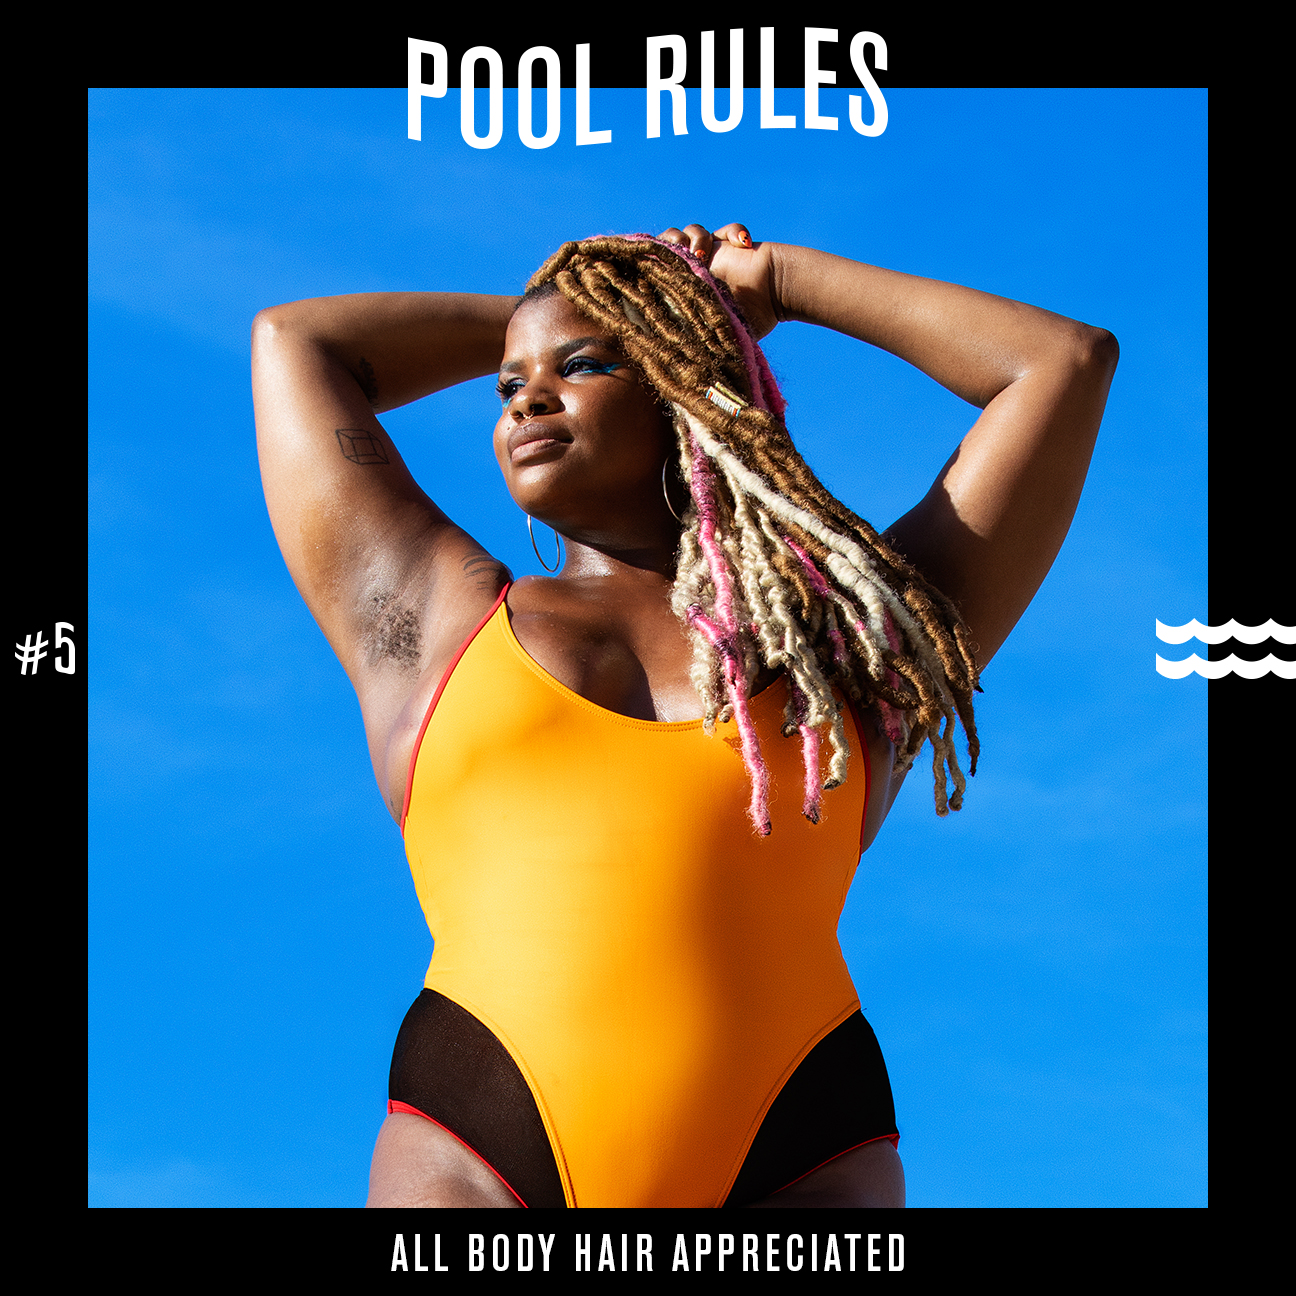 Chromat-PoolRules-Official-v2Artboard_5.jpg